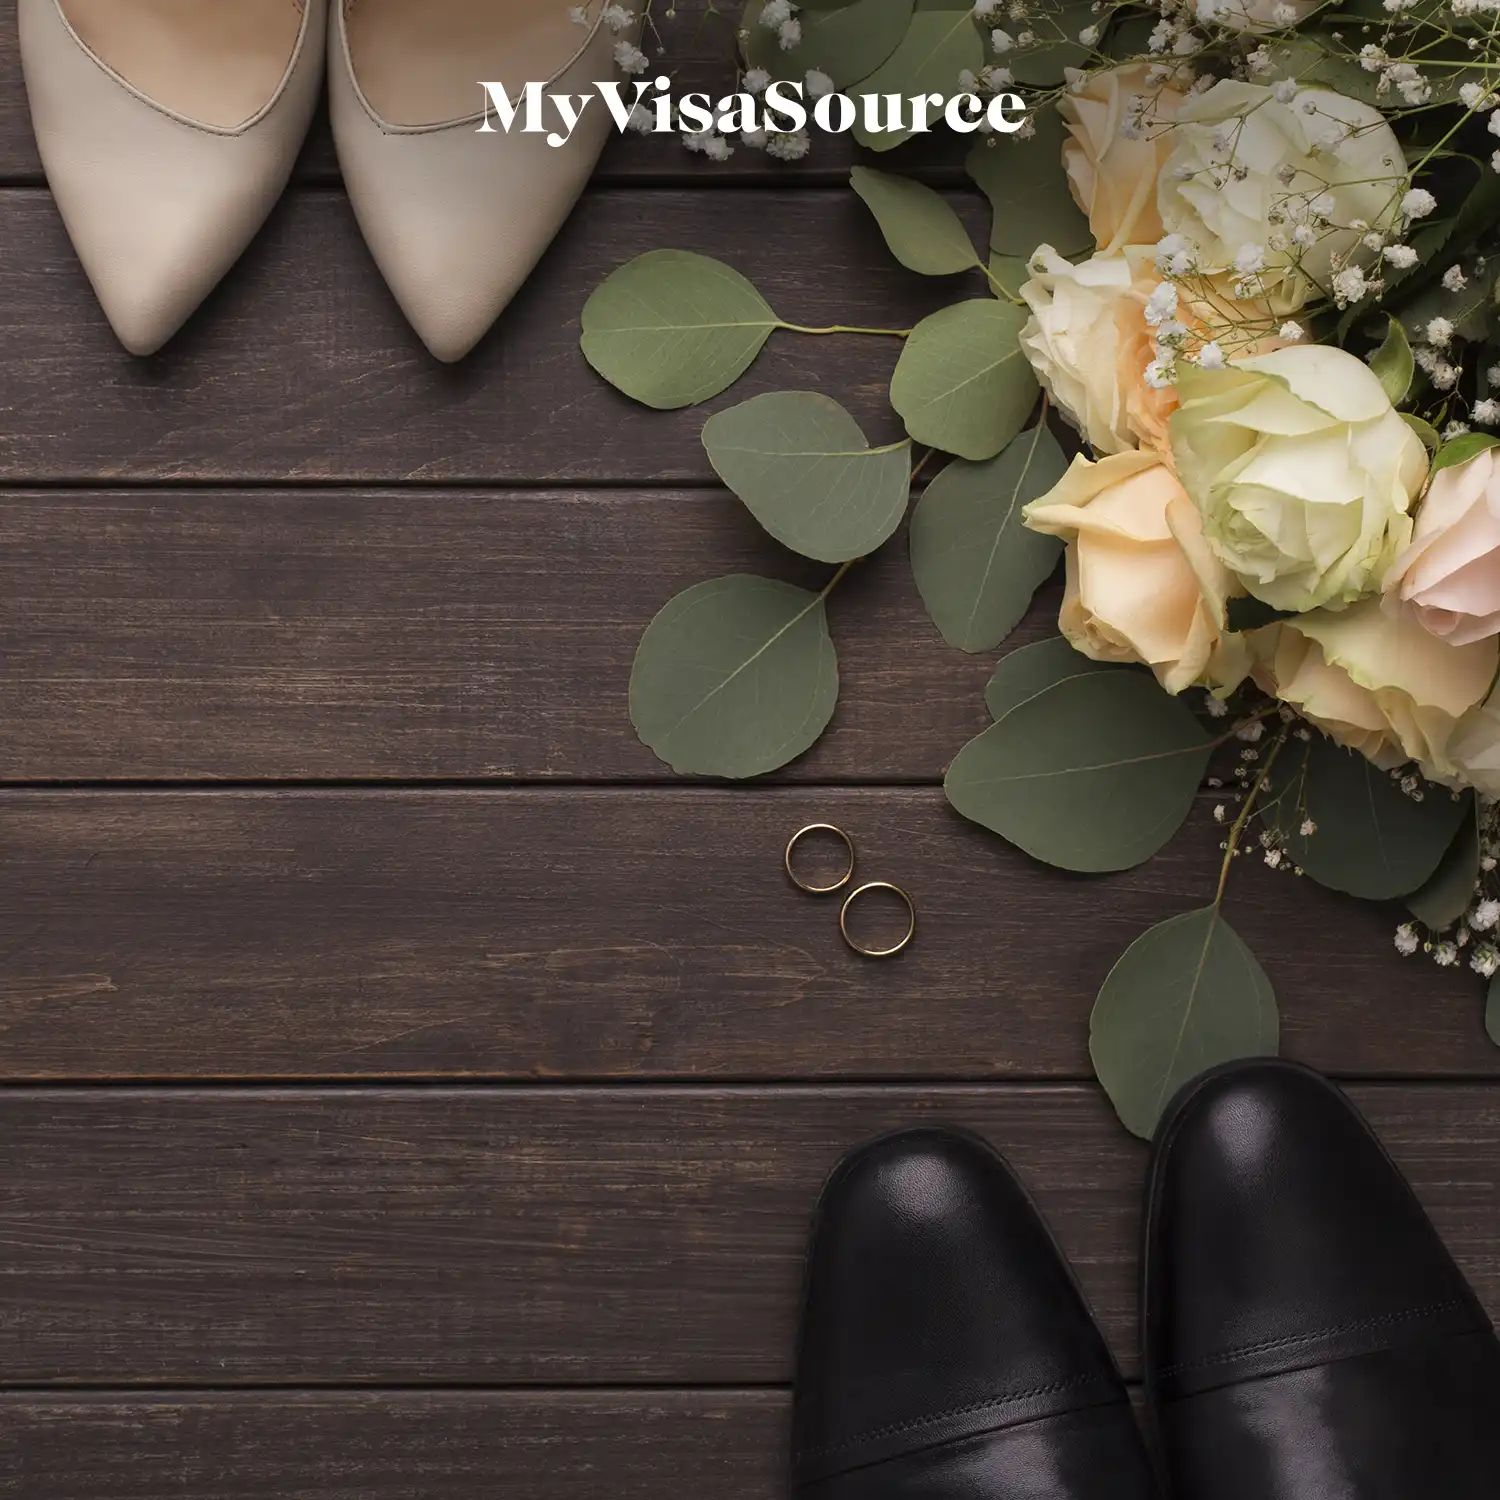 couple-about-to-be-married-scene-of-dress-shoes-facing-each-other-rings-and-flowers-by-my-visa-source